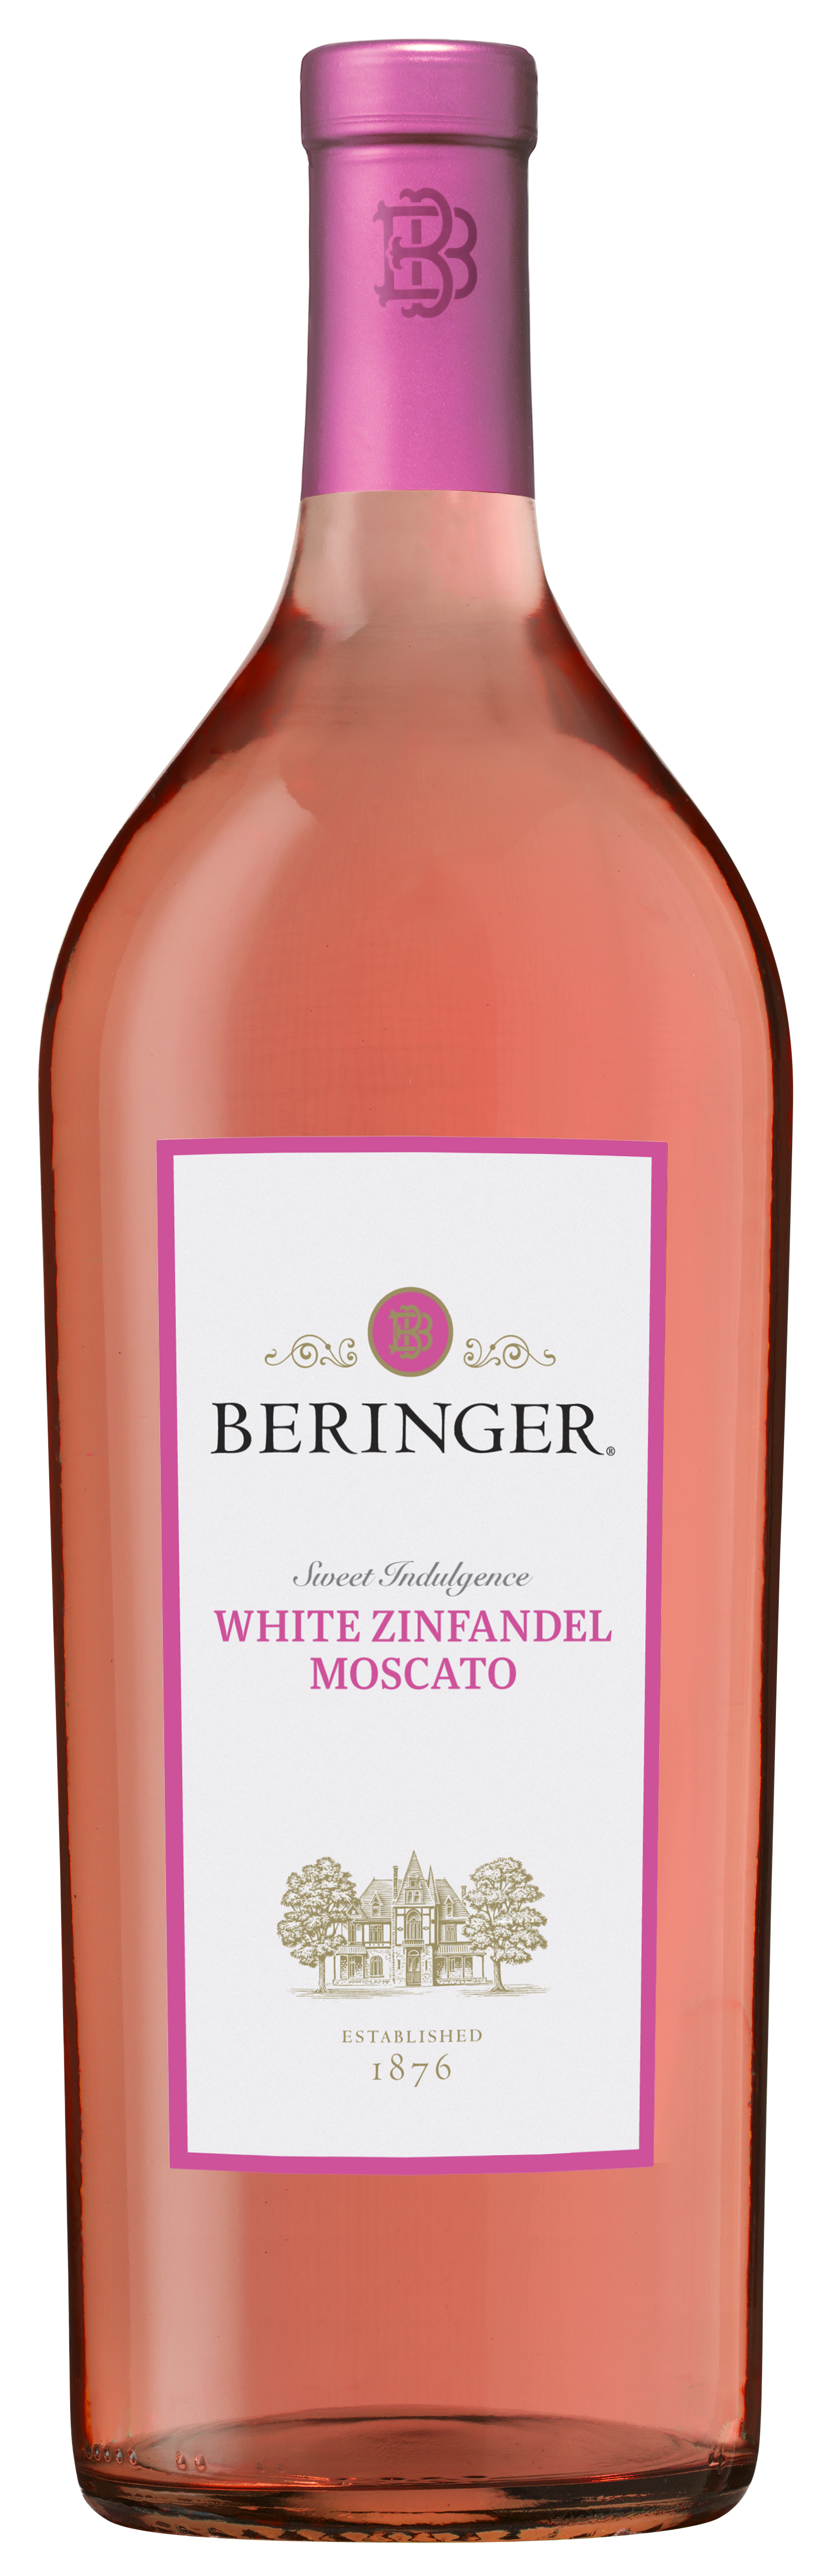 Beringer White Zinfandel Moscato Rich In Texture And Not Overtly Sweet This Wine Has Great Intensity On The Nose White Zinfandel Wine Drinks Wine And Spirits